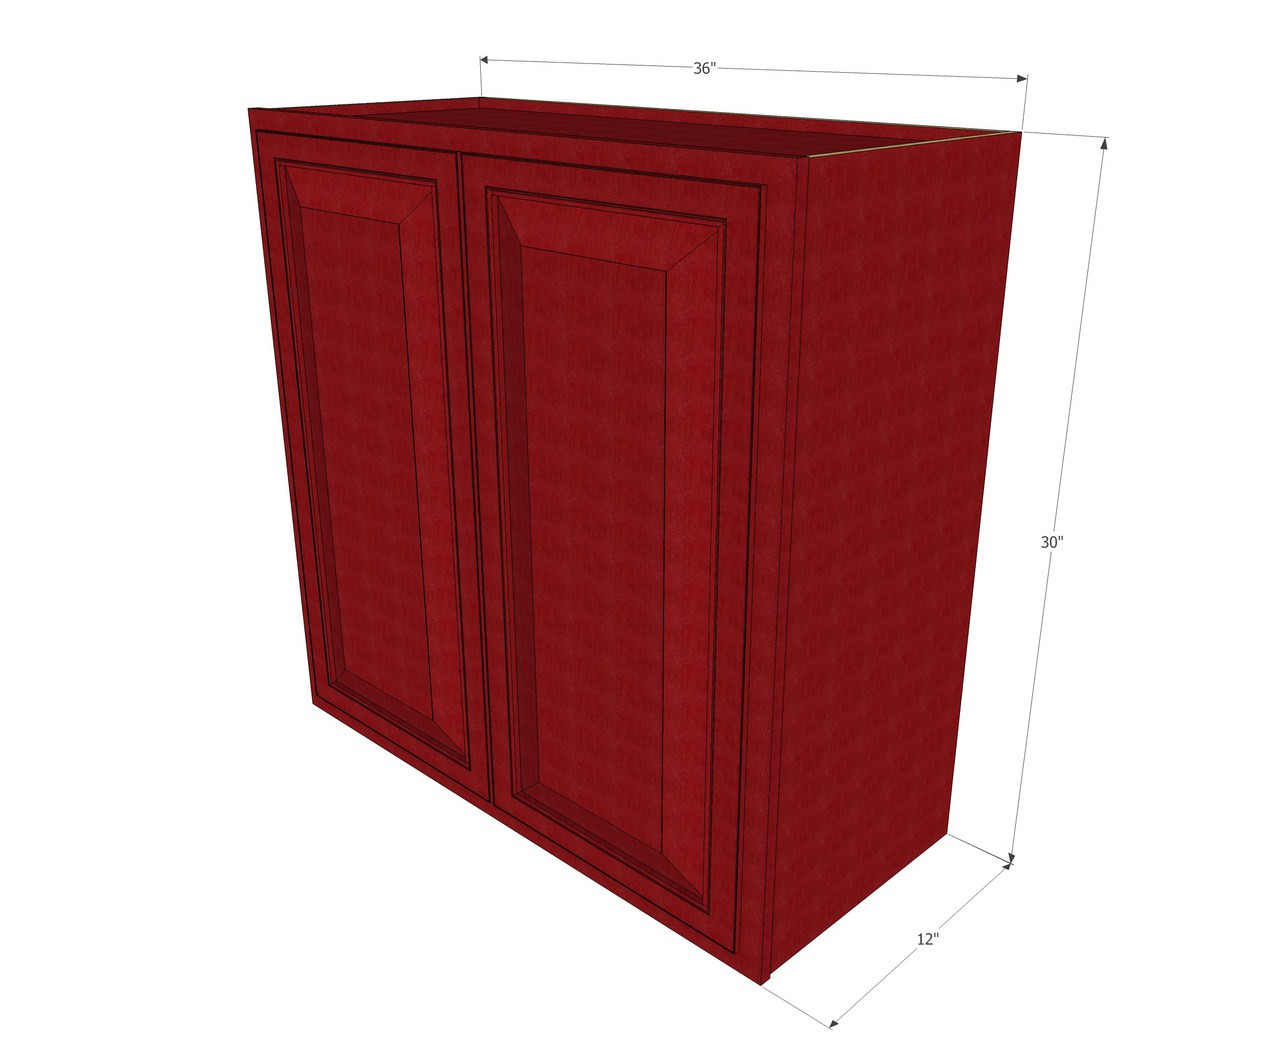 large double door grand reserve cherry wall cabinet 36 inch wide x 30 inch high kitchen. Black Bedroom Furniture Sets. Home Design Ideas